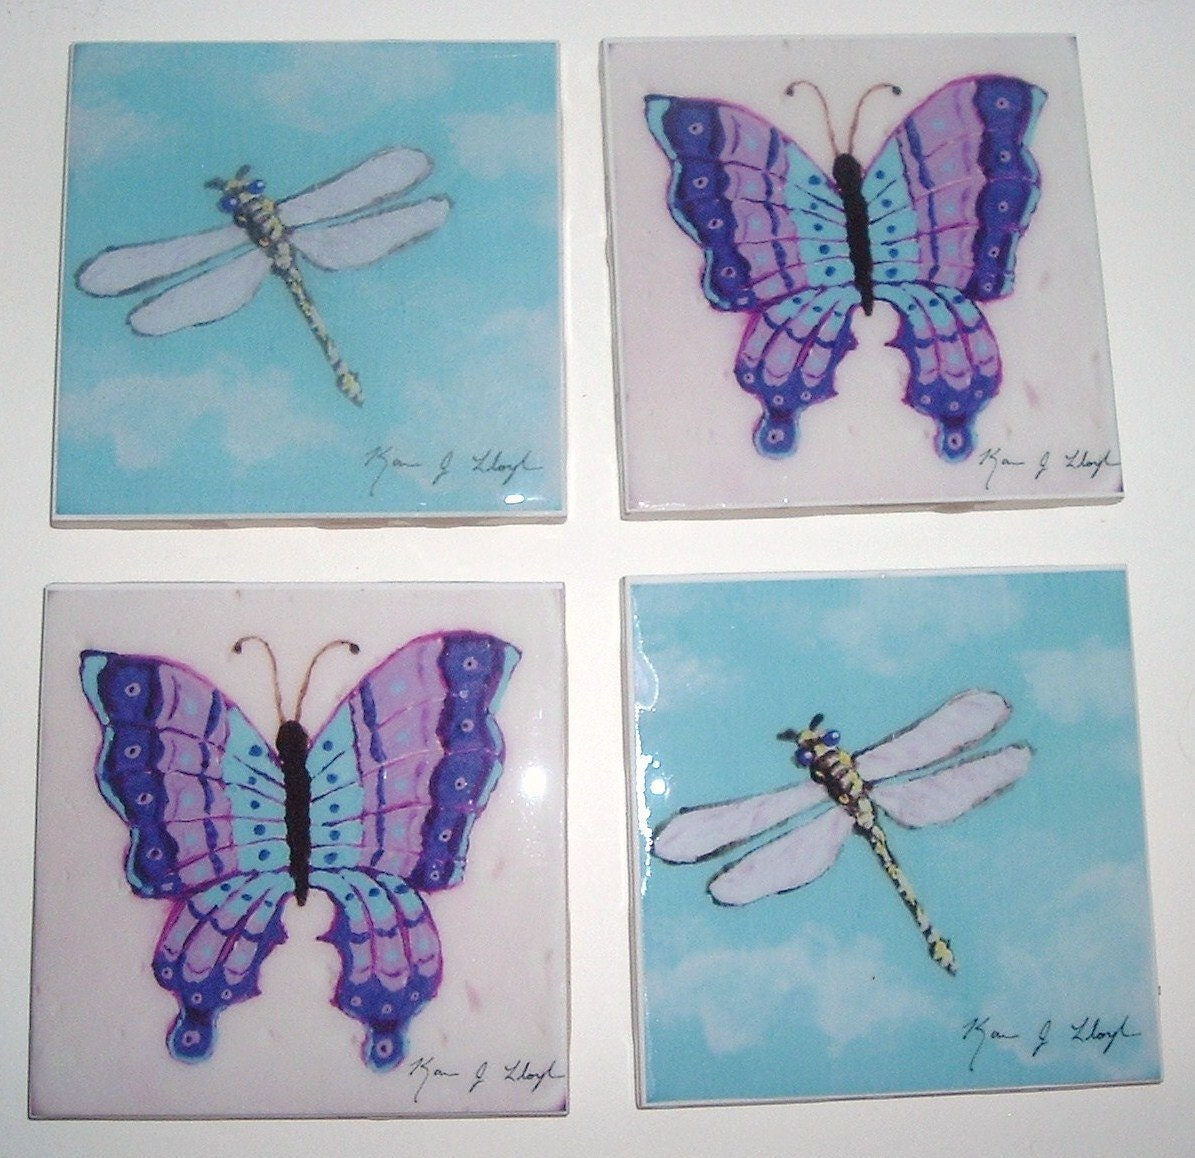 Butterfly & Dragonfly Whimsy of the Sky Series - Set of 4 Art Tiles / Ceramic Coasters